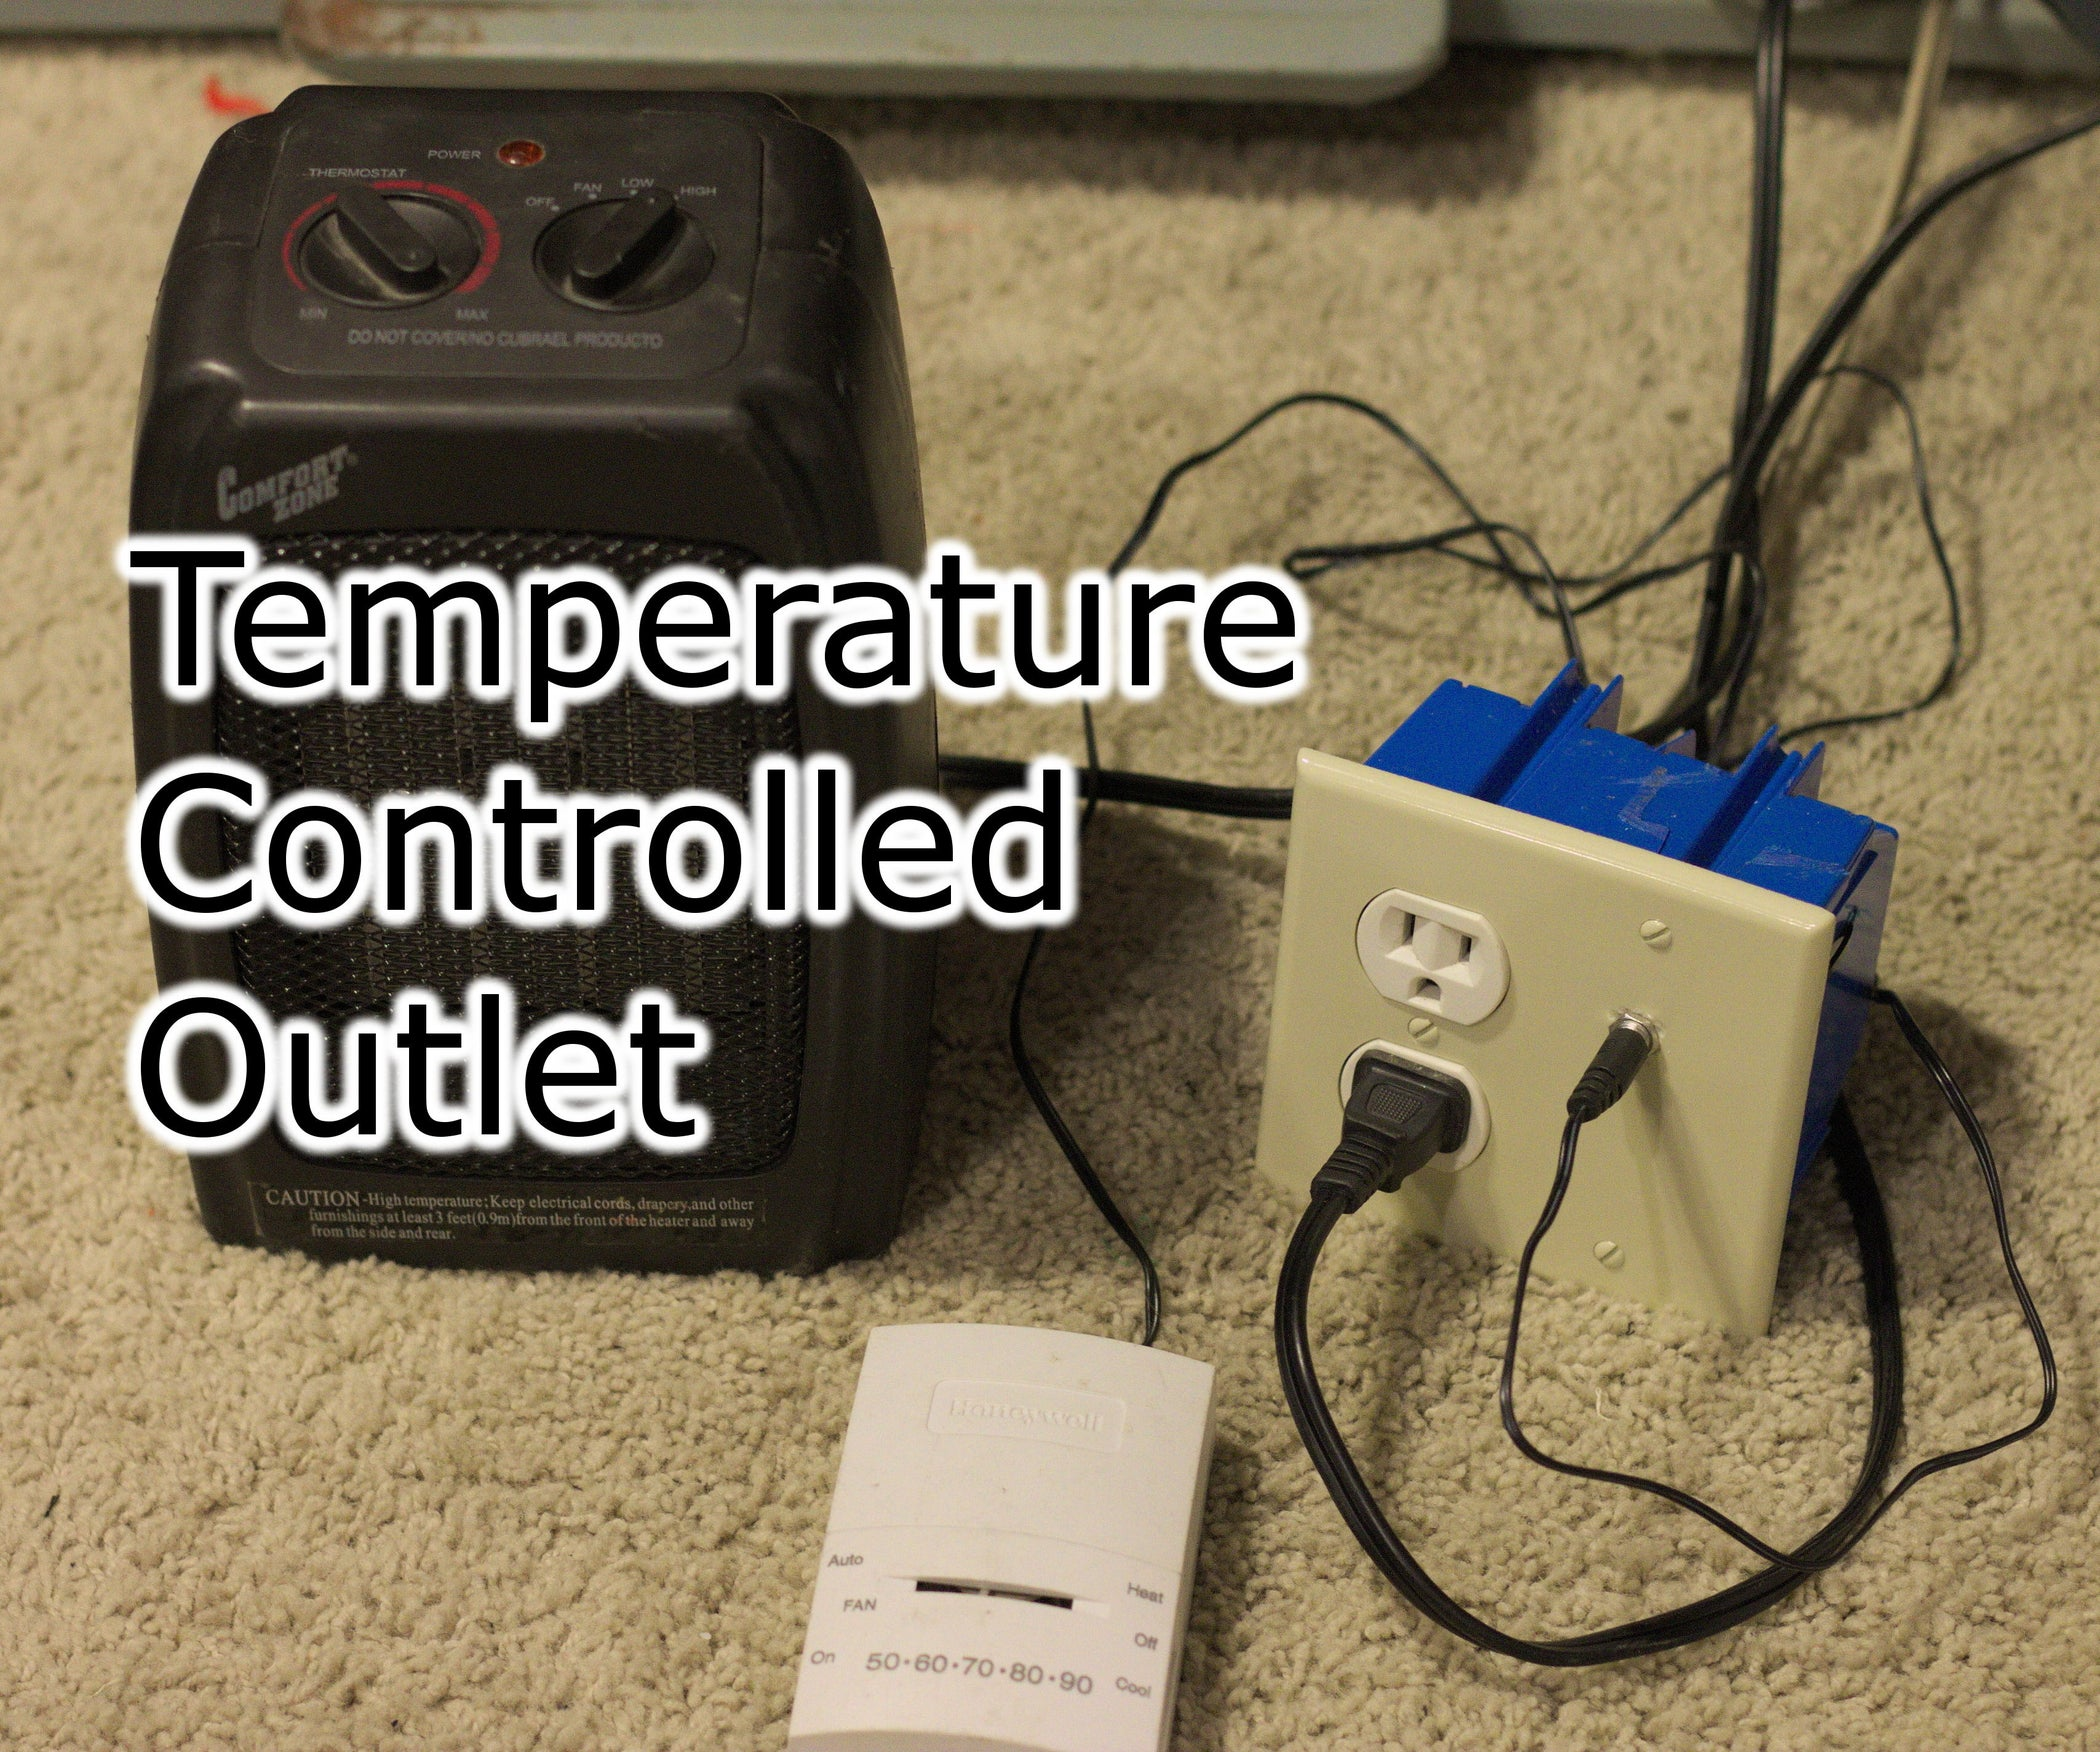 Thermostat Controlled Outlet 9 Steps With Pictures Wiring Switched